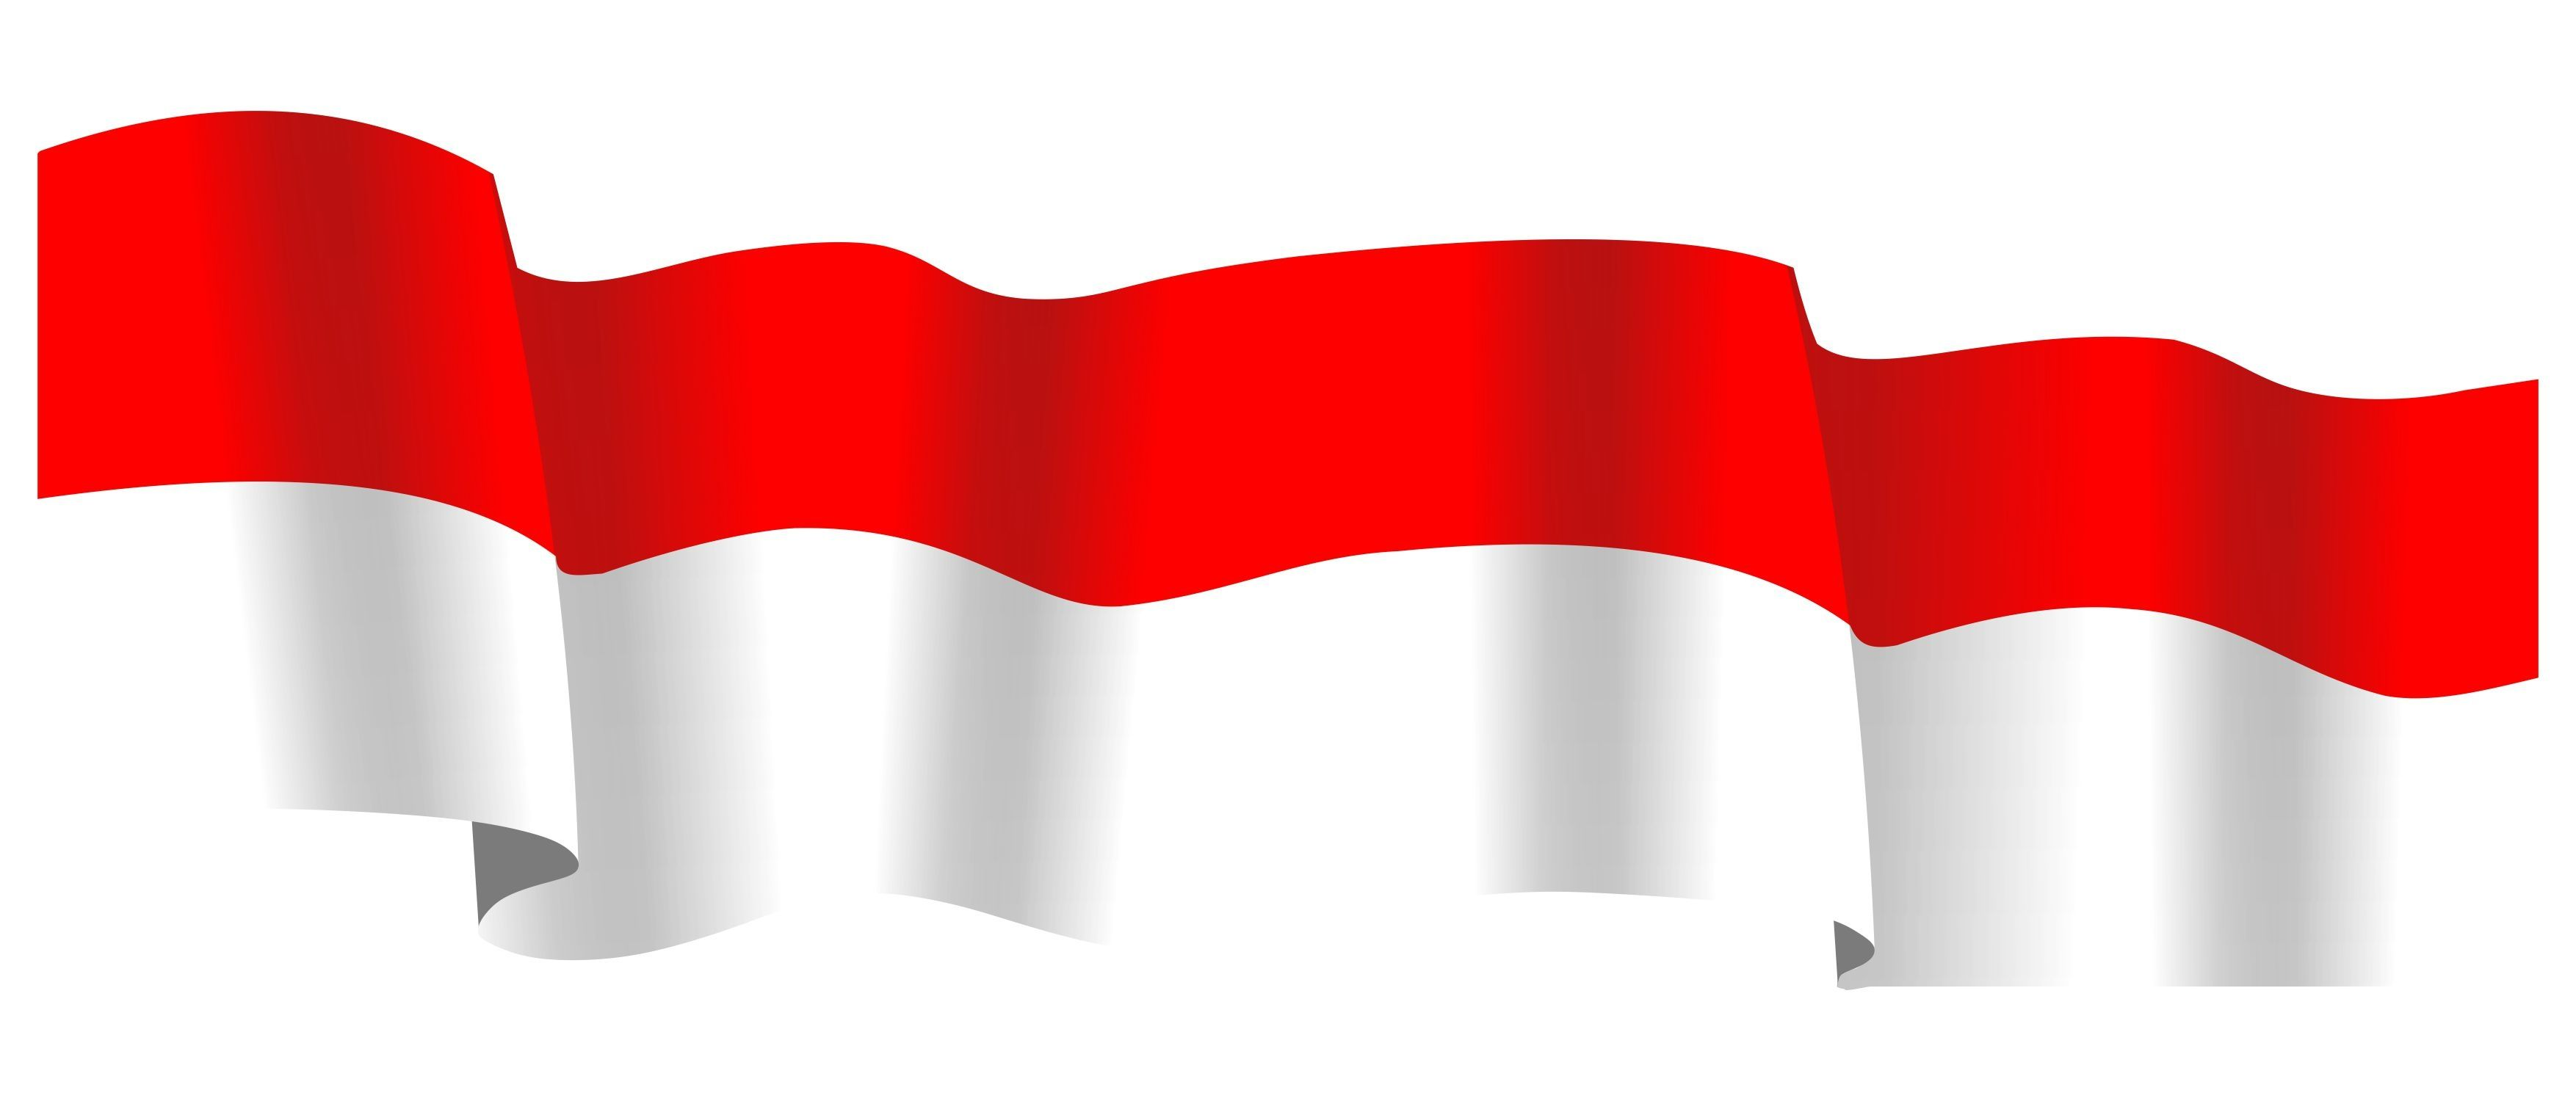 Download Vector Design Background Merah 7 Gambar Bendera Indonesia Merah Putih Vector Cdr Ai Pdf Within Vector Design Backgr Bendera Desain Signage Abstrak